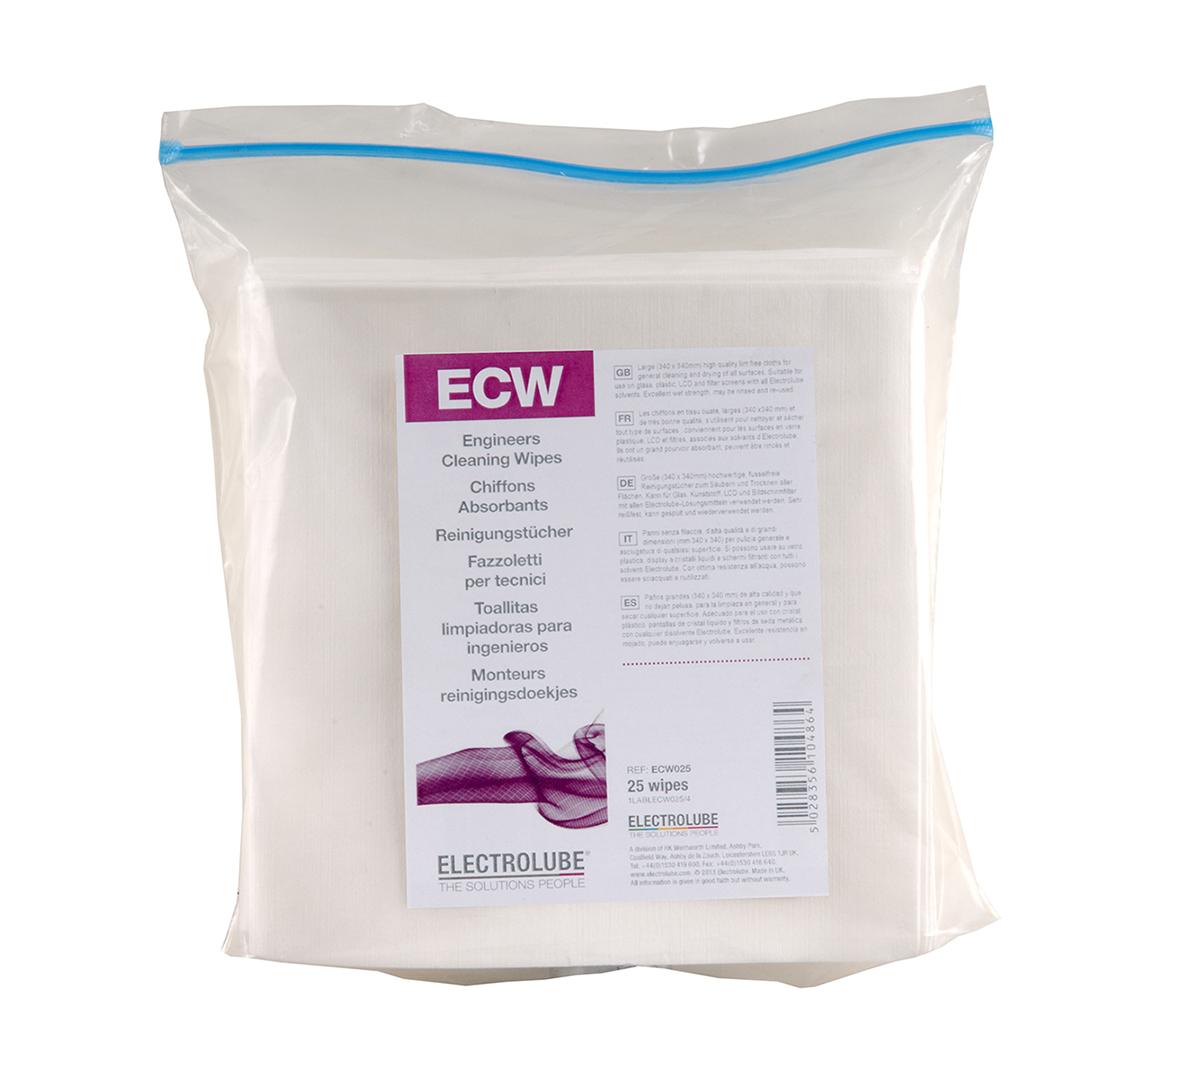 Engineers Cleaning Wipes ECW